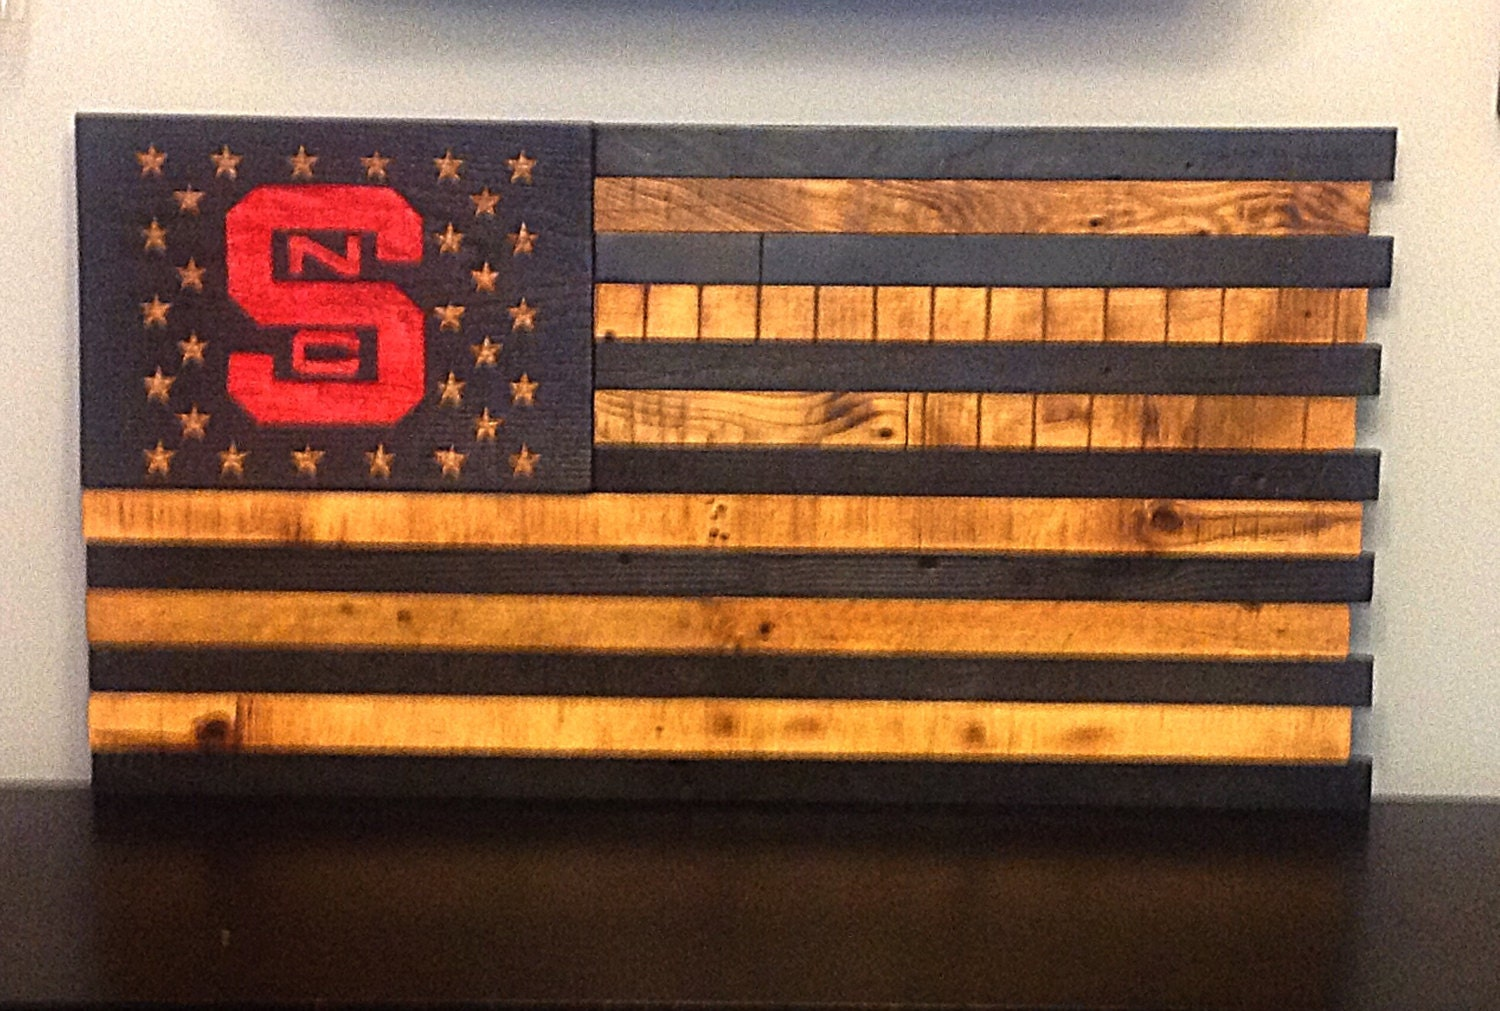 92003d0bdc08 NC State Wooden American Flag Reclaimed Wood Burned Distressed Hand Carved  Stars Subdued Flag 19.5